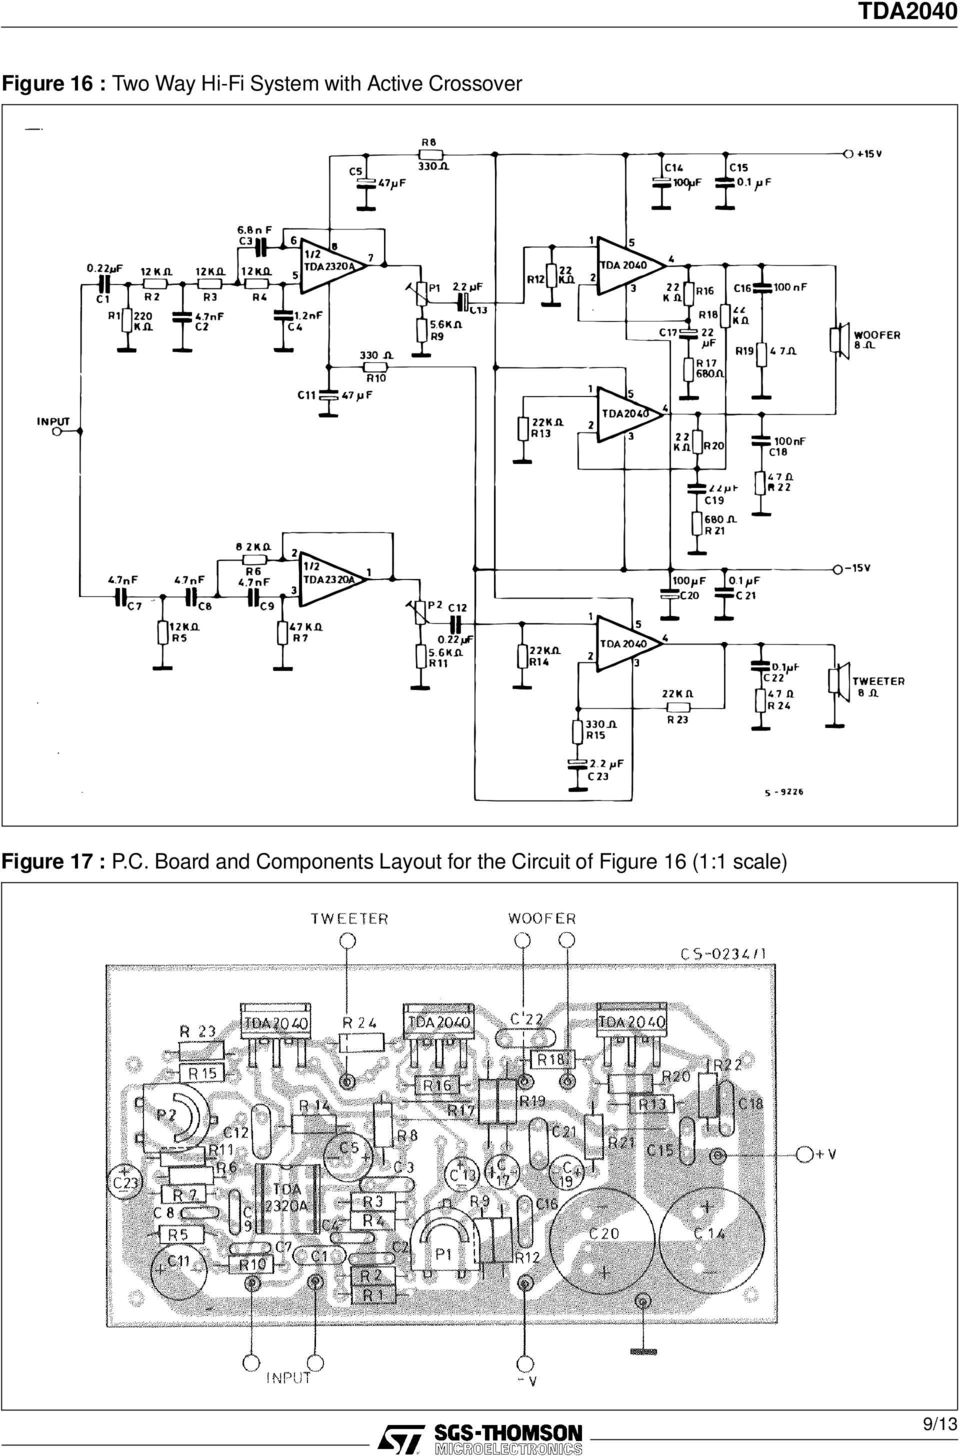 C. Board and Components Layout for